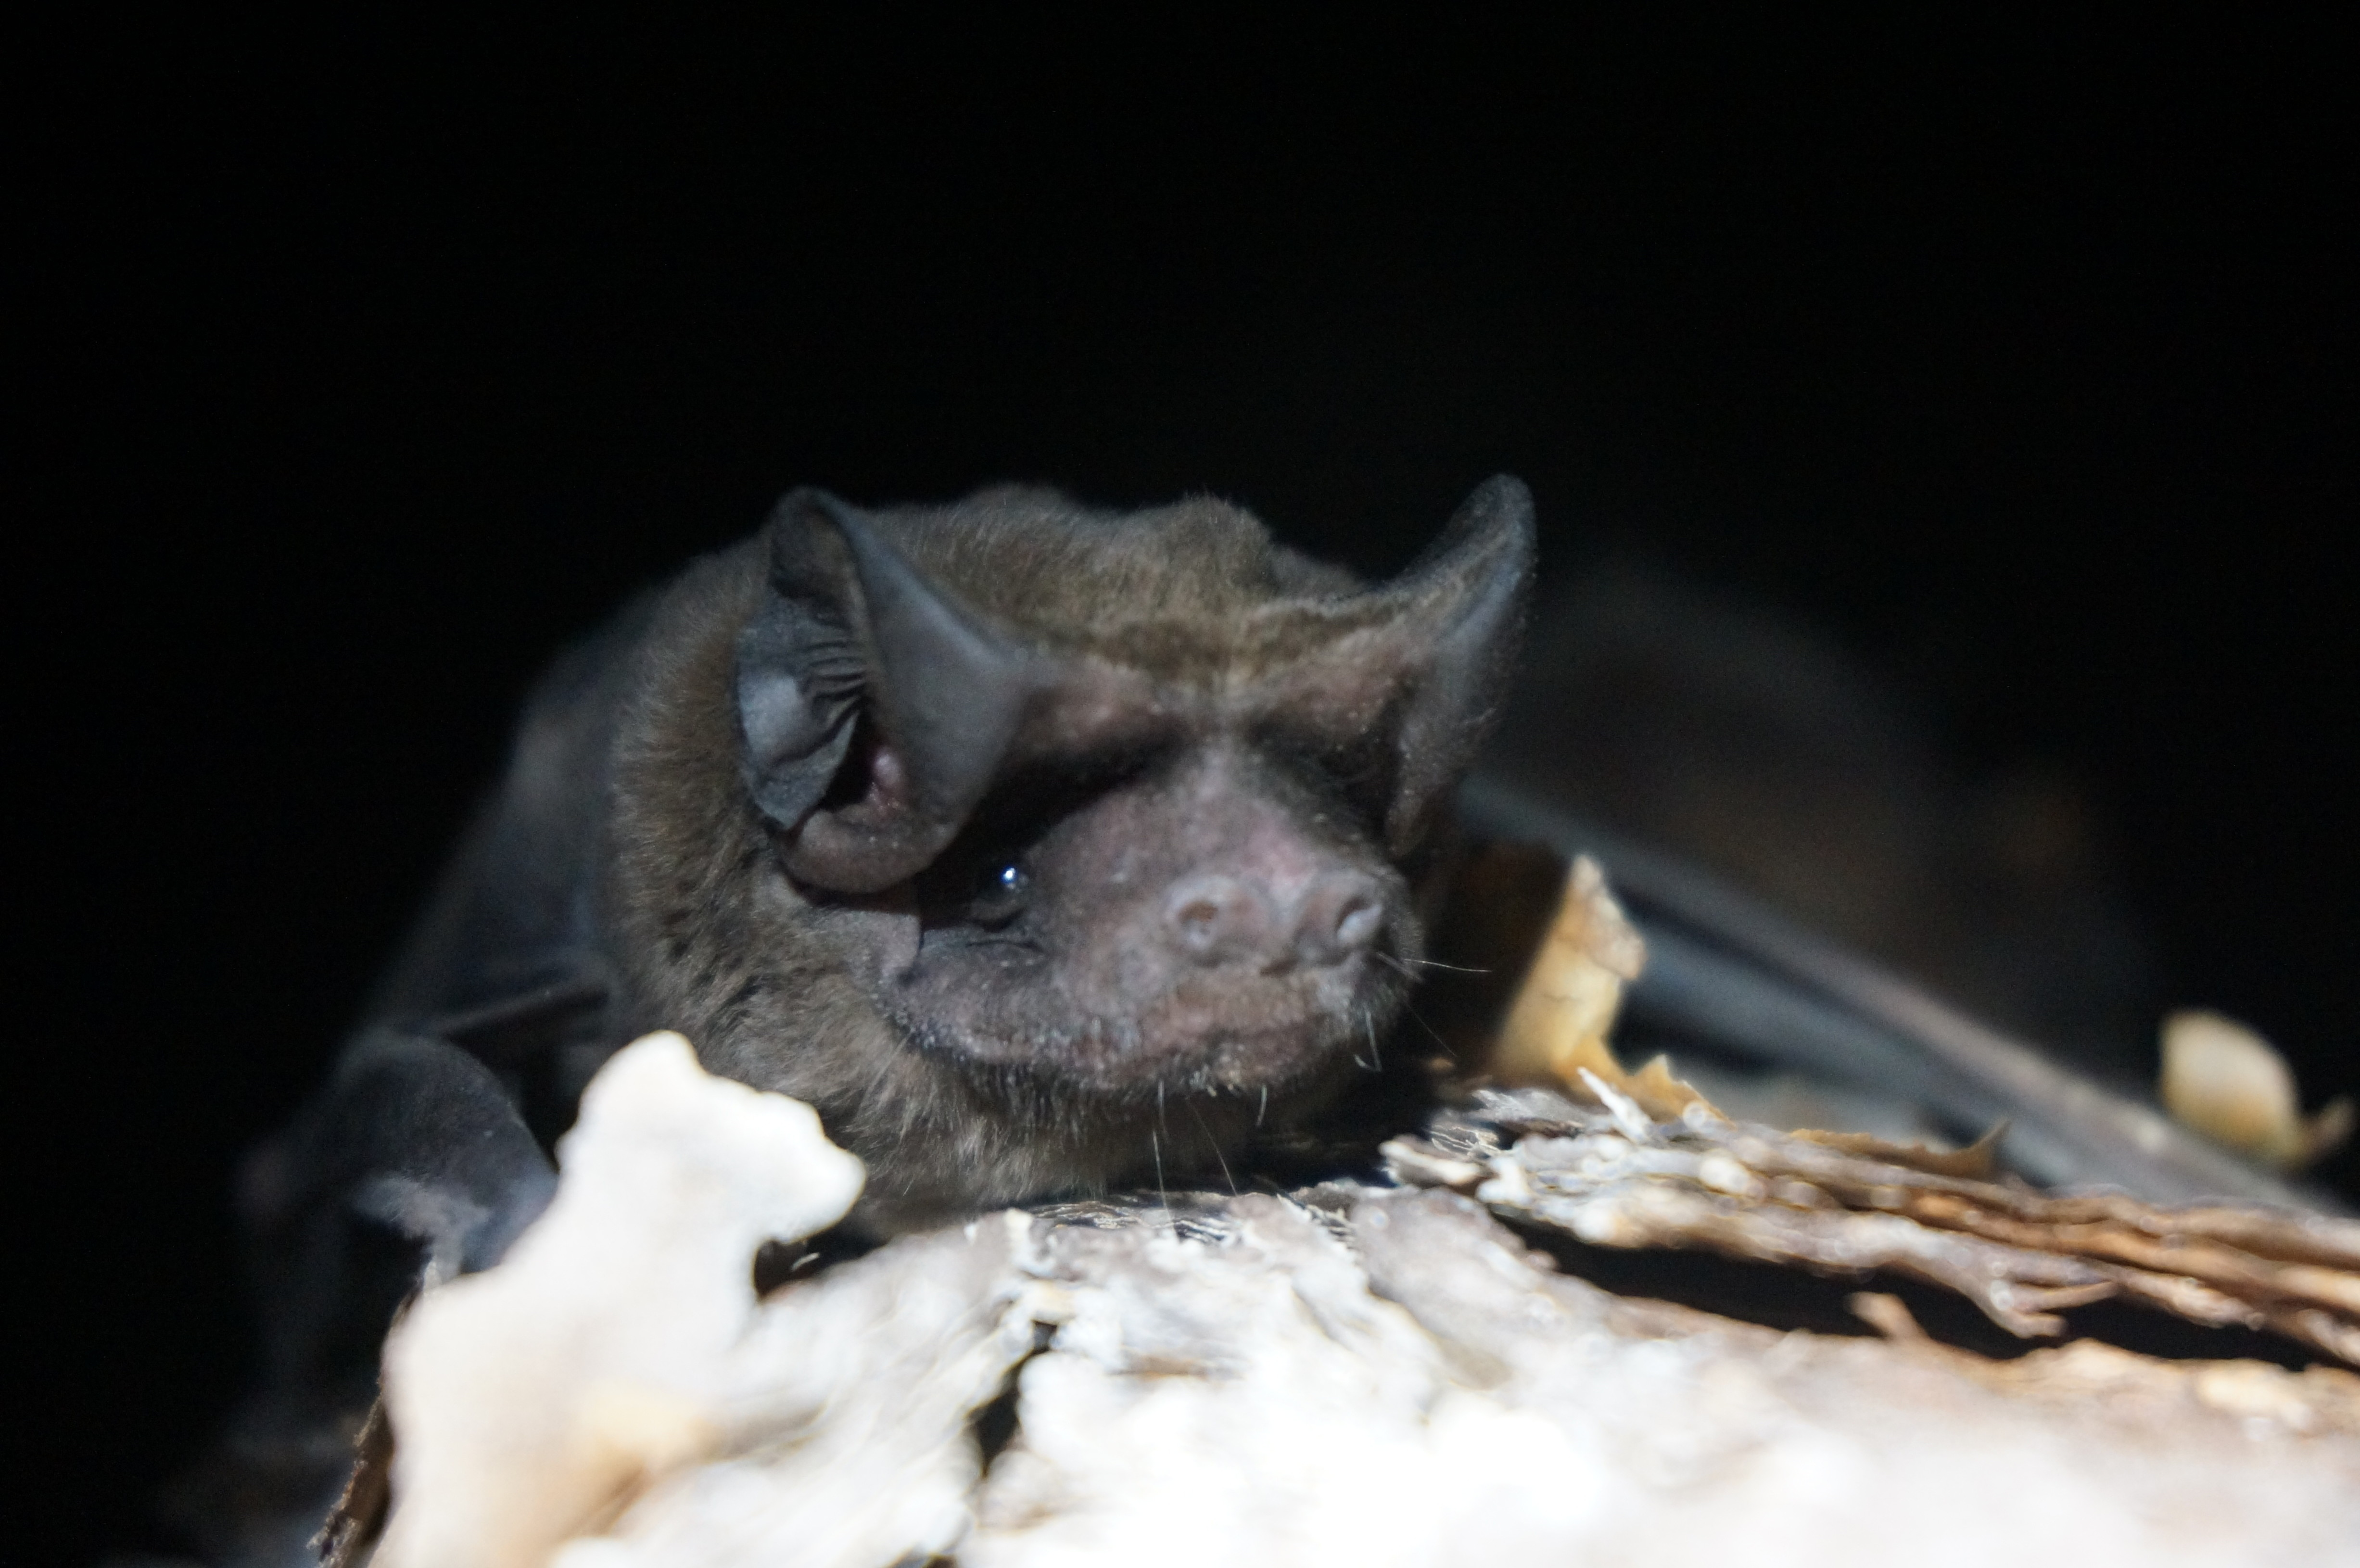 Miami Fl December 6 2018 Bat Conservation International Bci And Zoo Announced Today A New Aggressive Multi Faceted Campaign To Save The